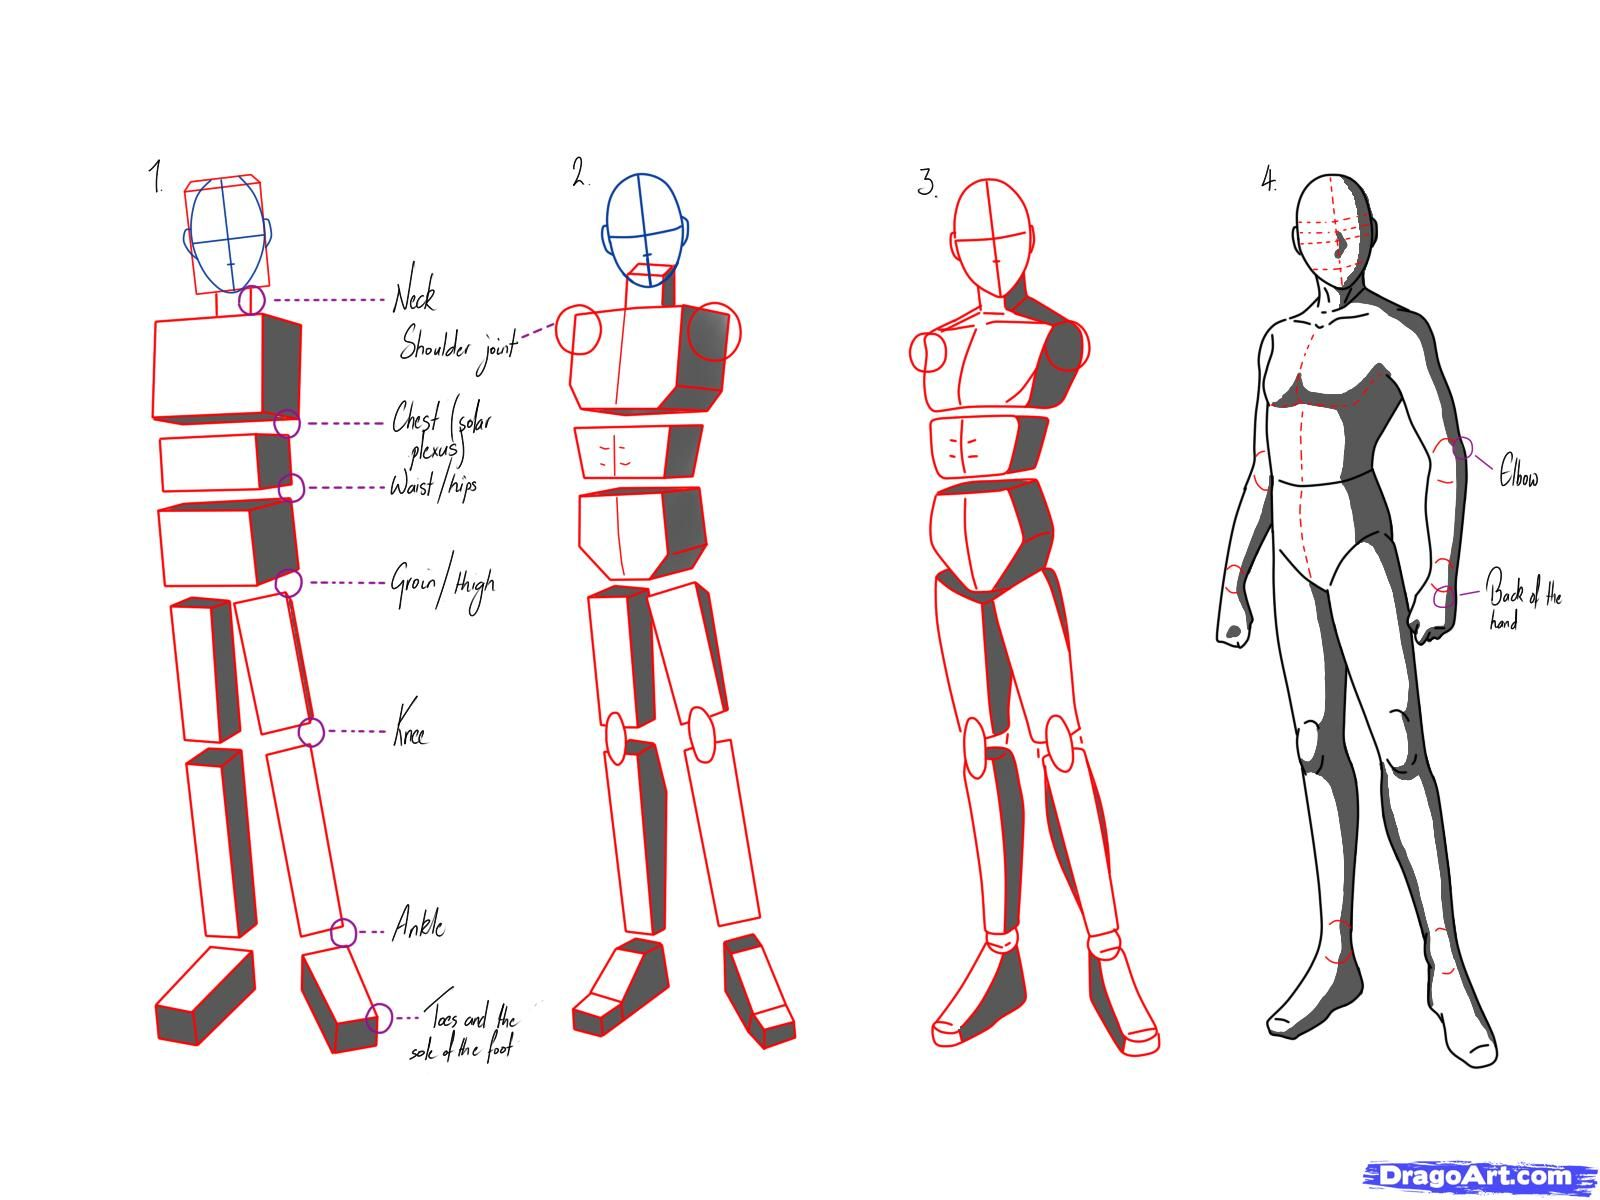 Pin By Tree On My Kind Of Art Anime Drawings Anime Poses Drawing Anime Bodies